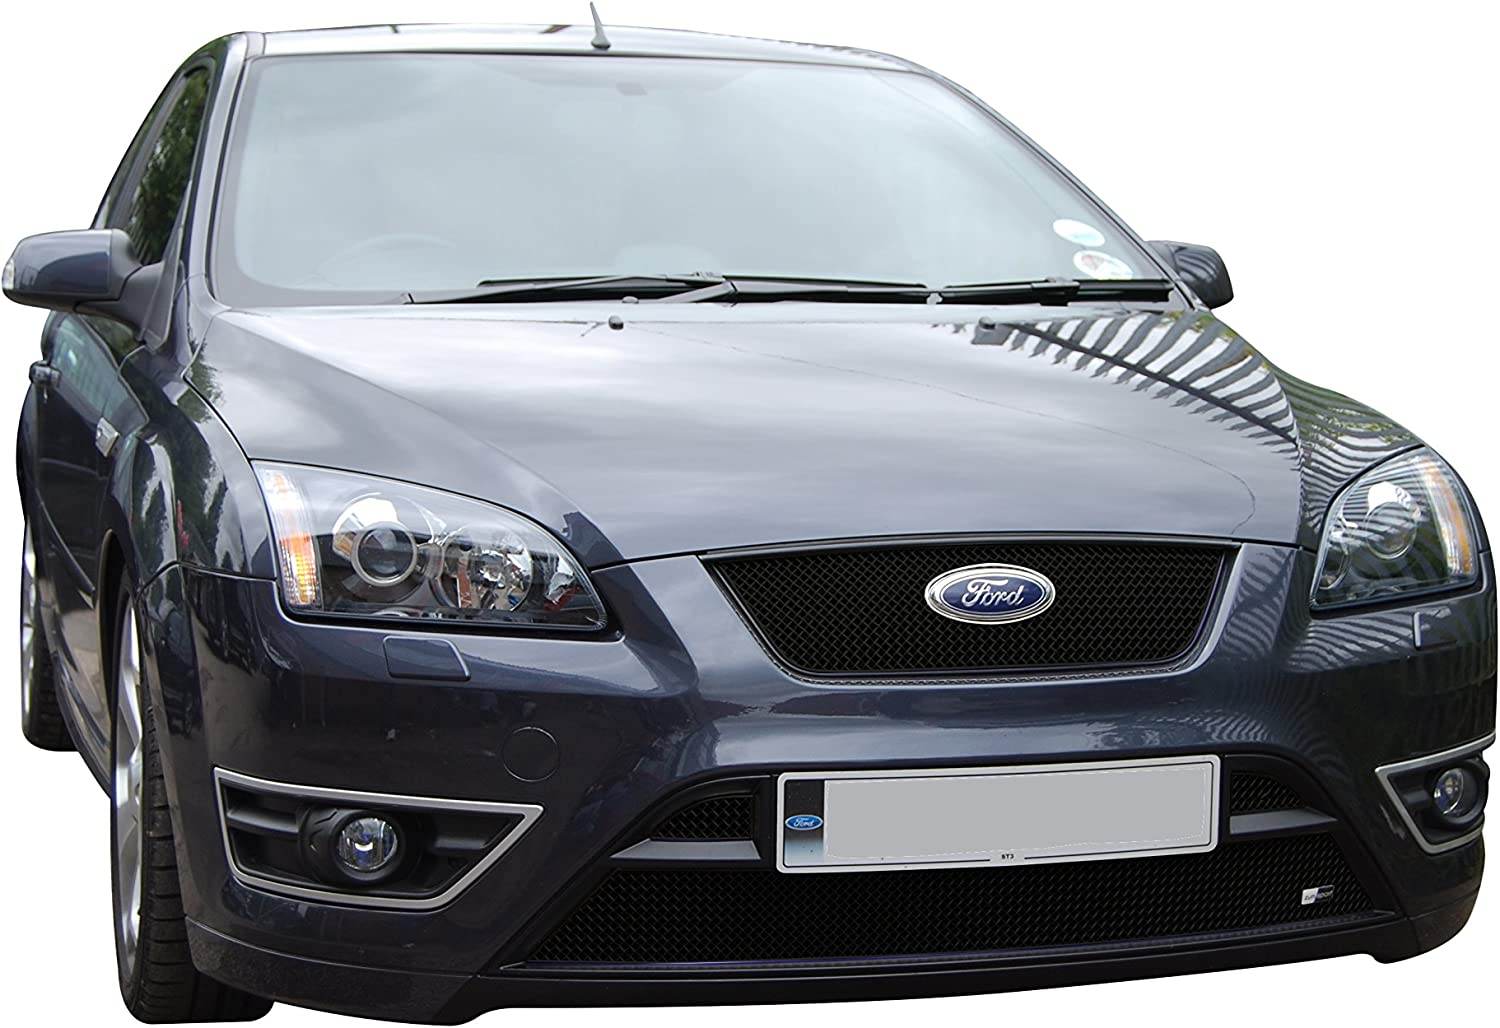 Zunsport Ford Focus ST 05-07 Front Upper Stainless Steel Grille